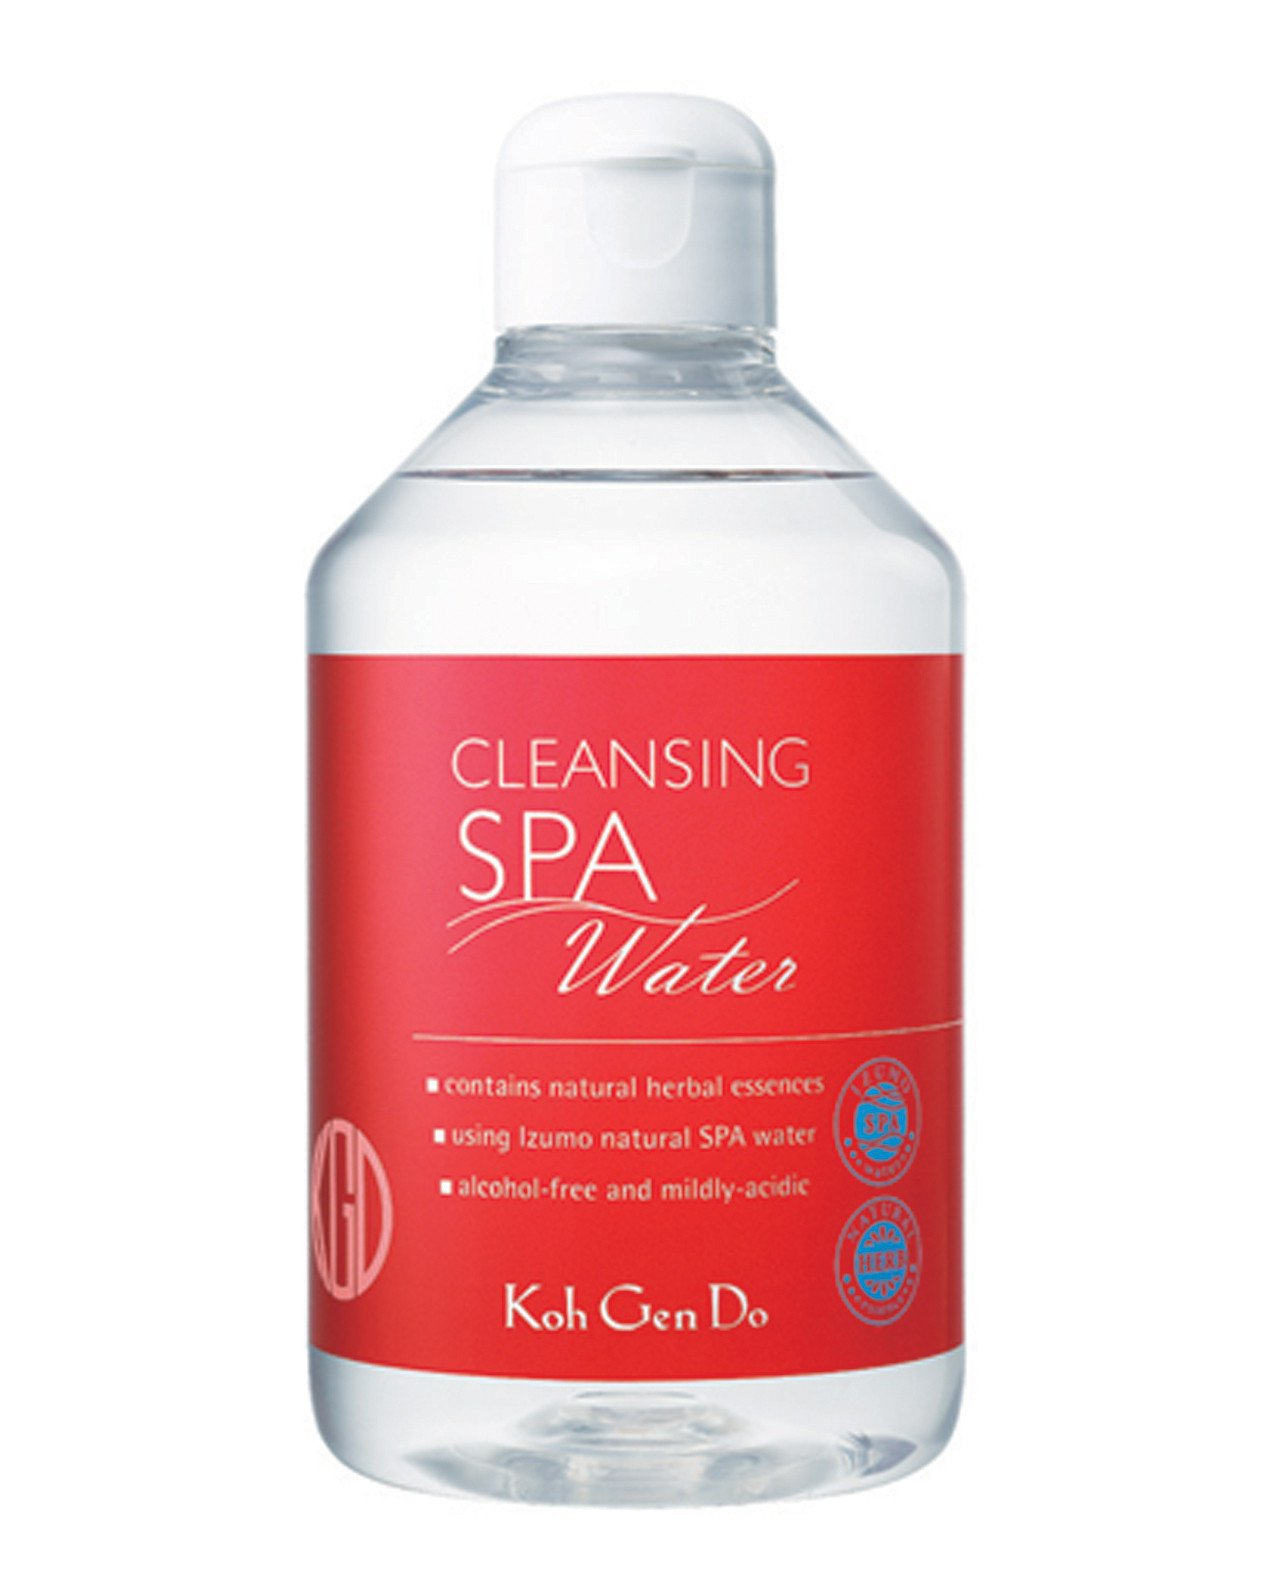 Cleansing Spa Water Image